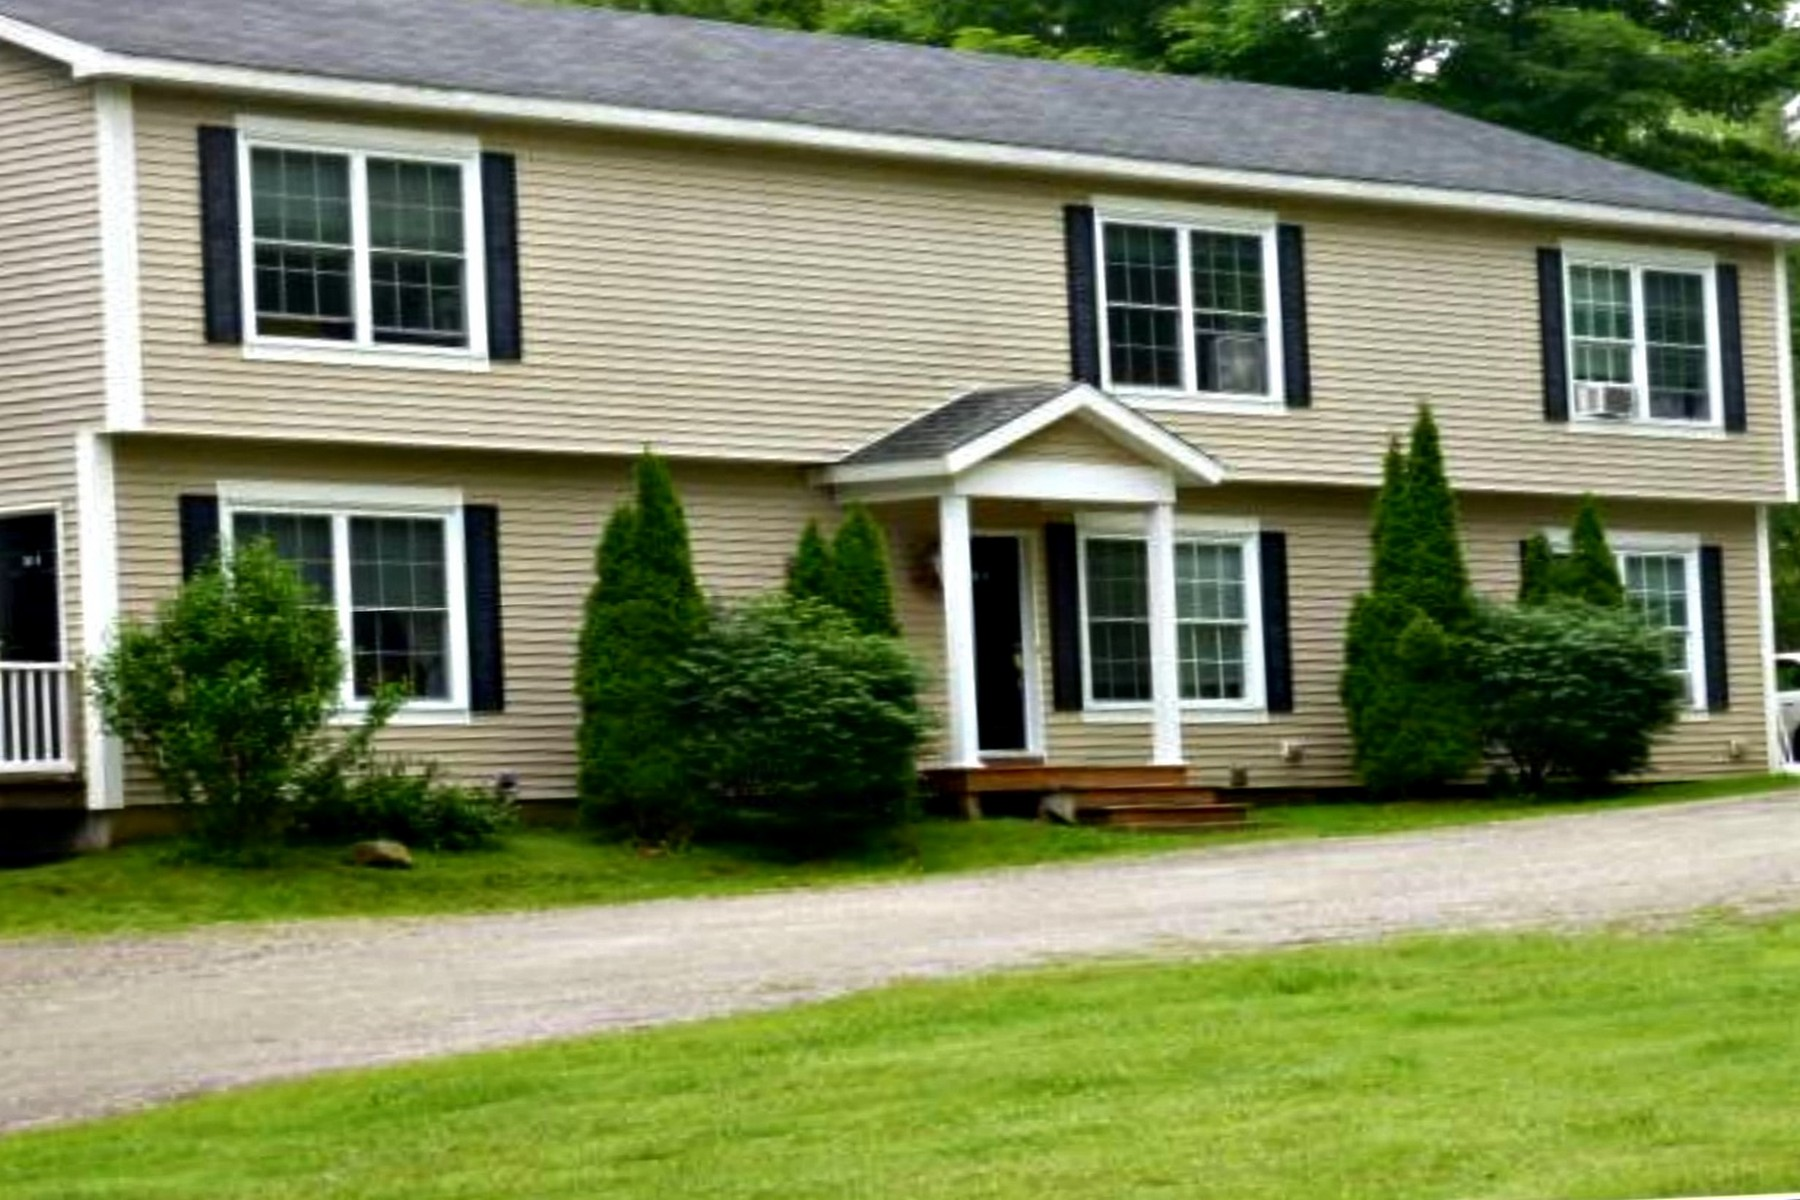 Multi-Family Homes for Sale at 16 Burnt Meadow Road, Peru 16 Burnt Meadow Rd Peru, Vermont 05152 United States